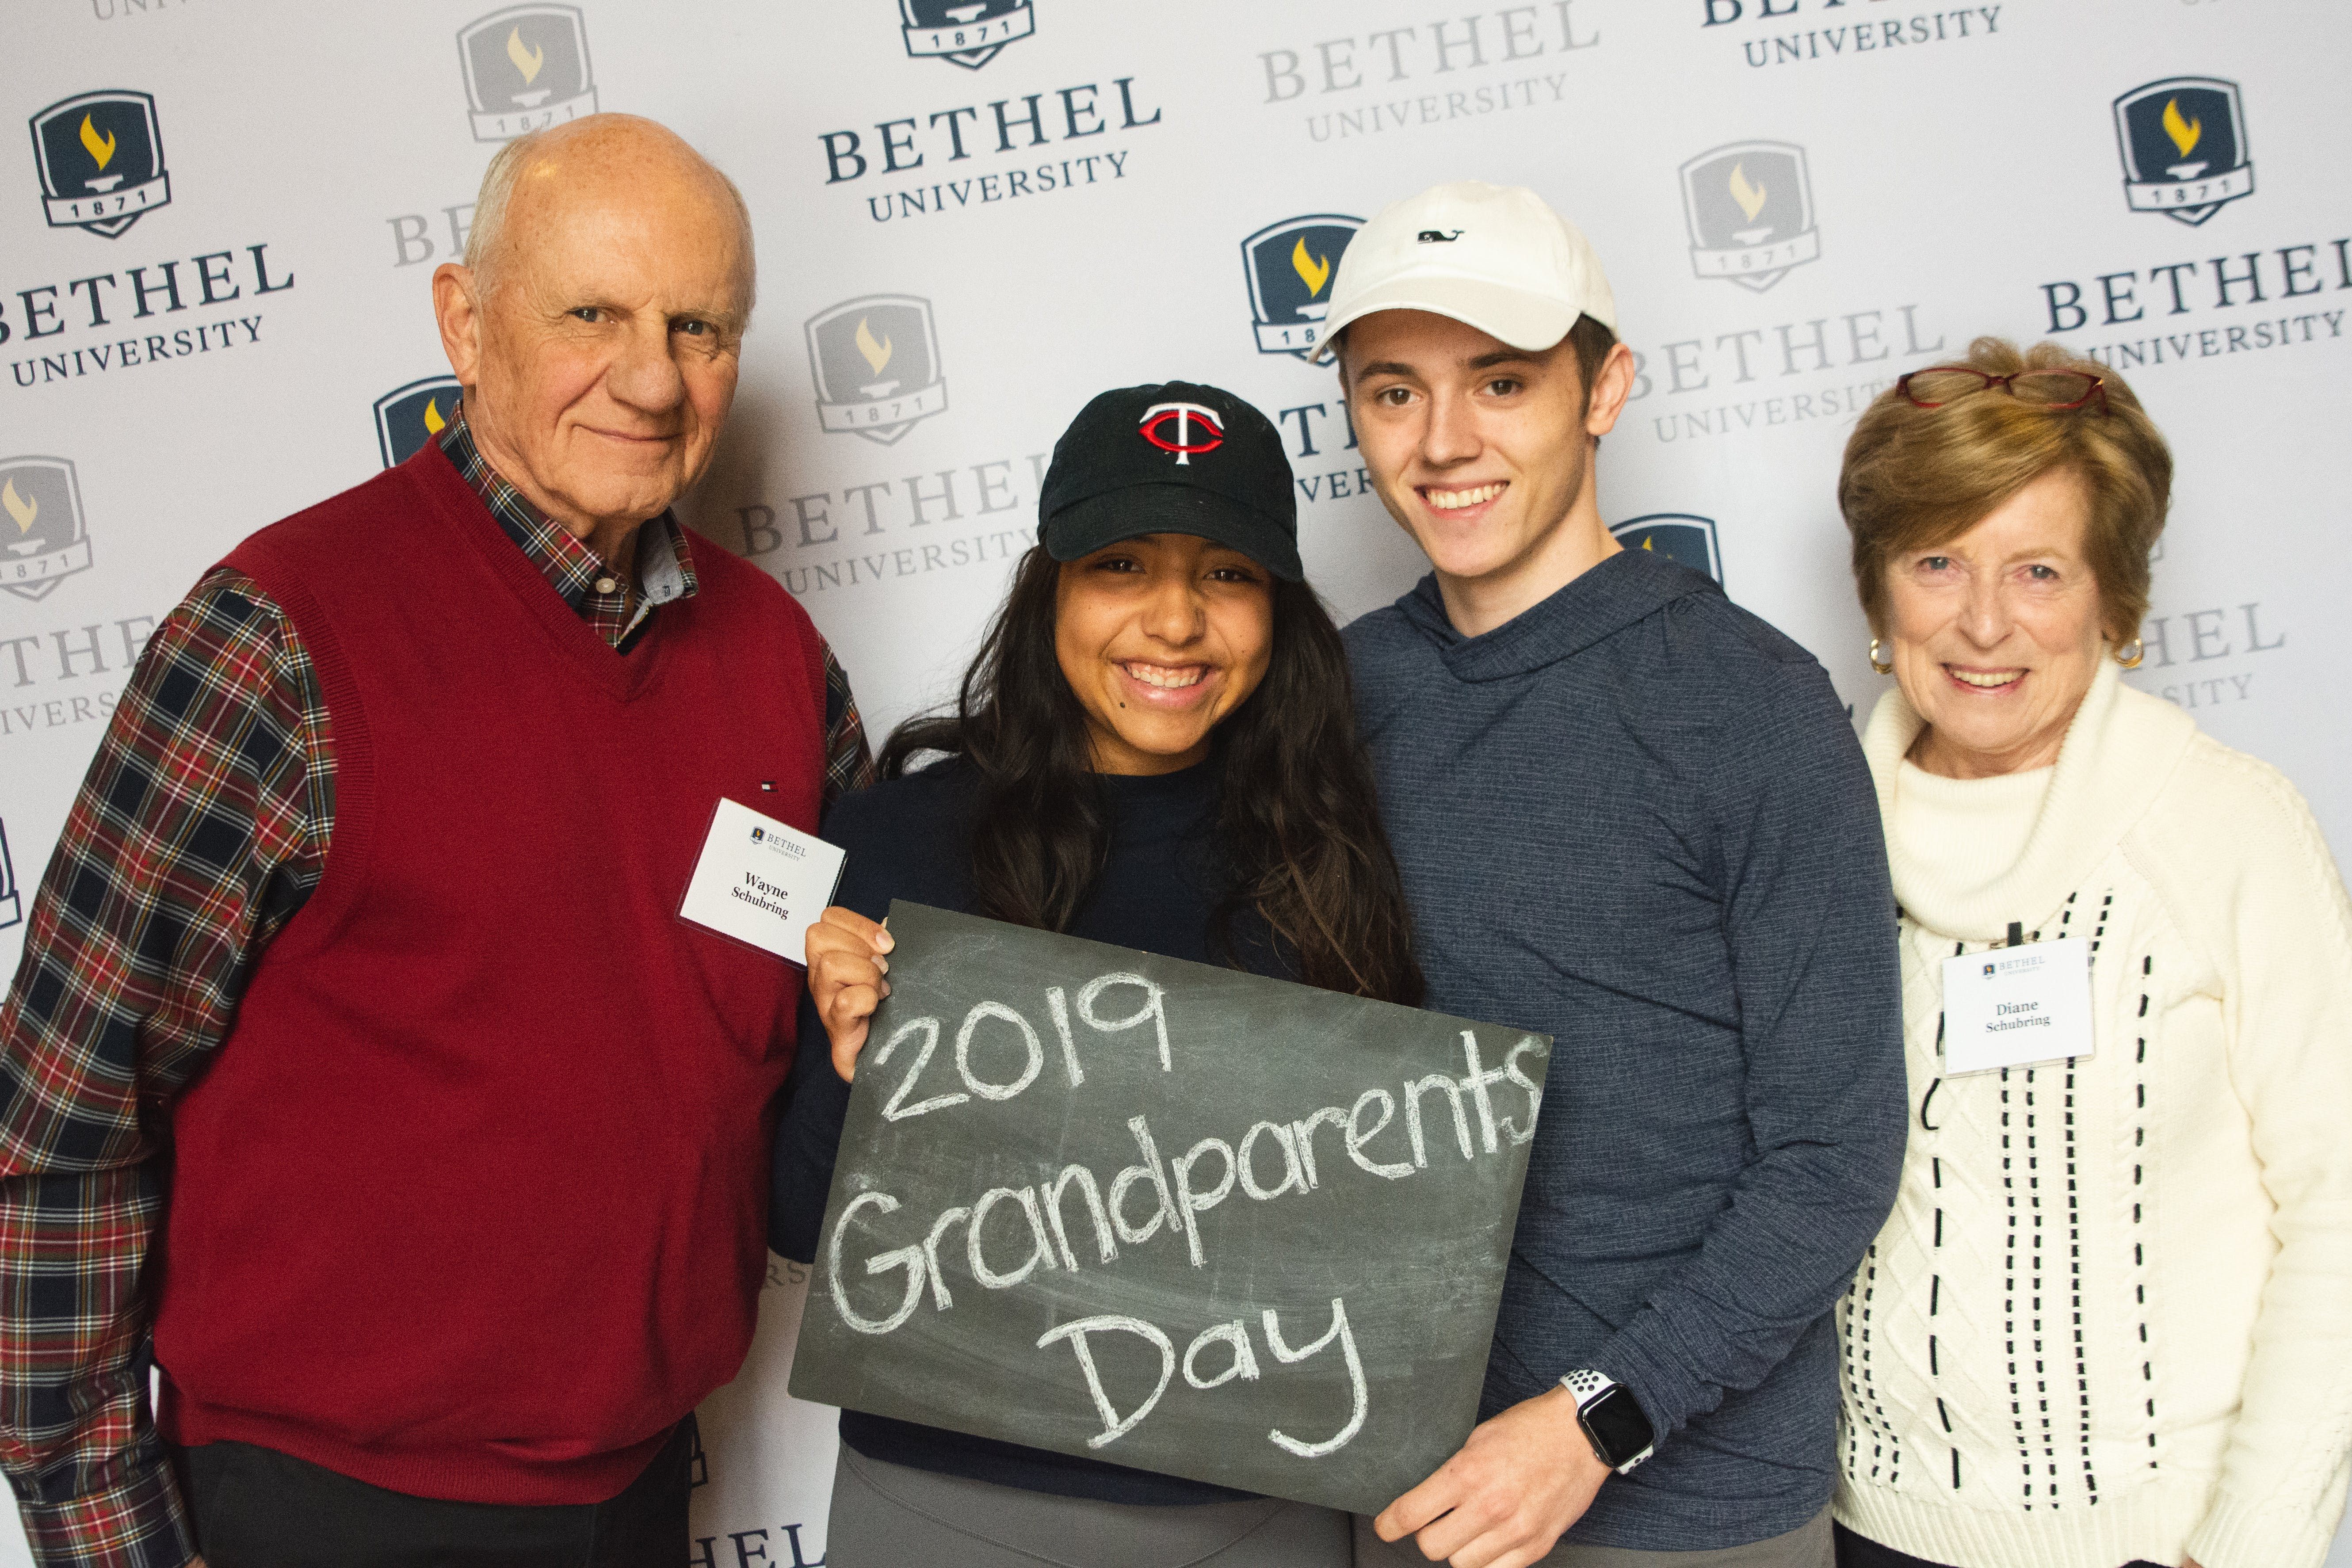 Grandparents Day 2019 Celebrates Generations of Bethel Community